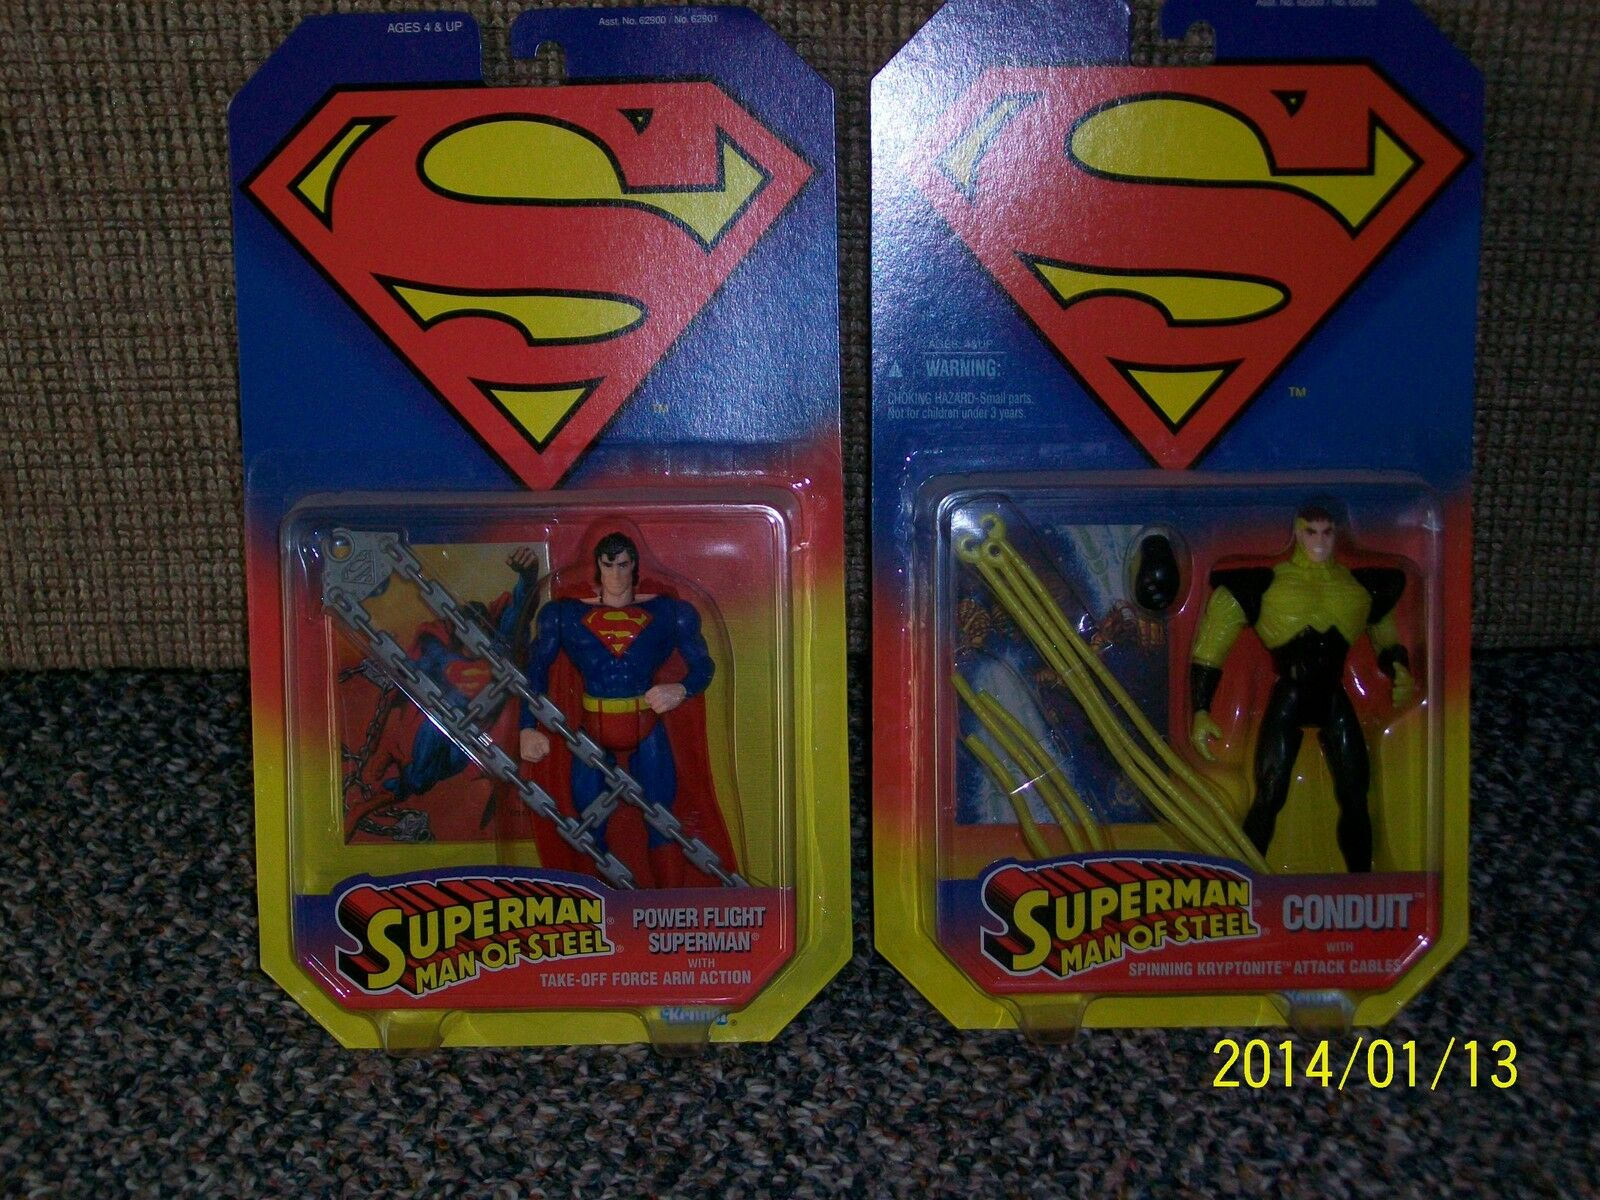 Kenner Superman: Man of Steel set with vehicles